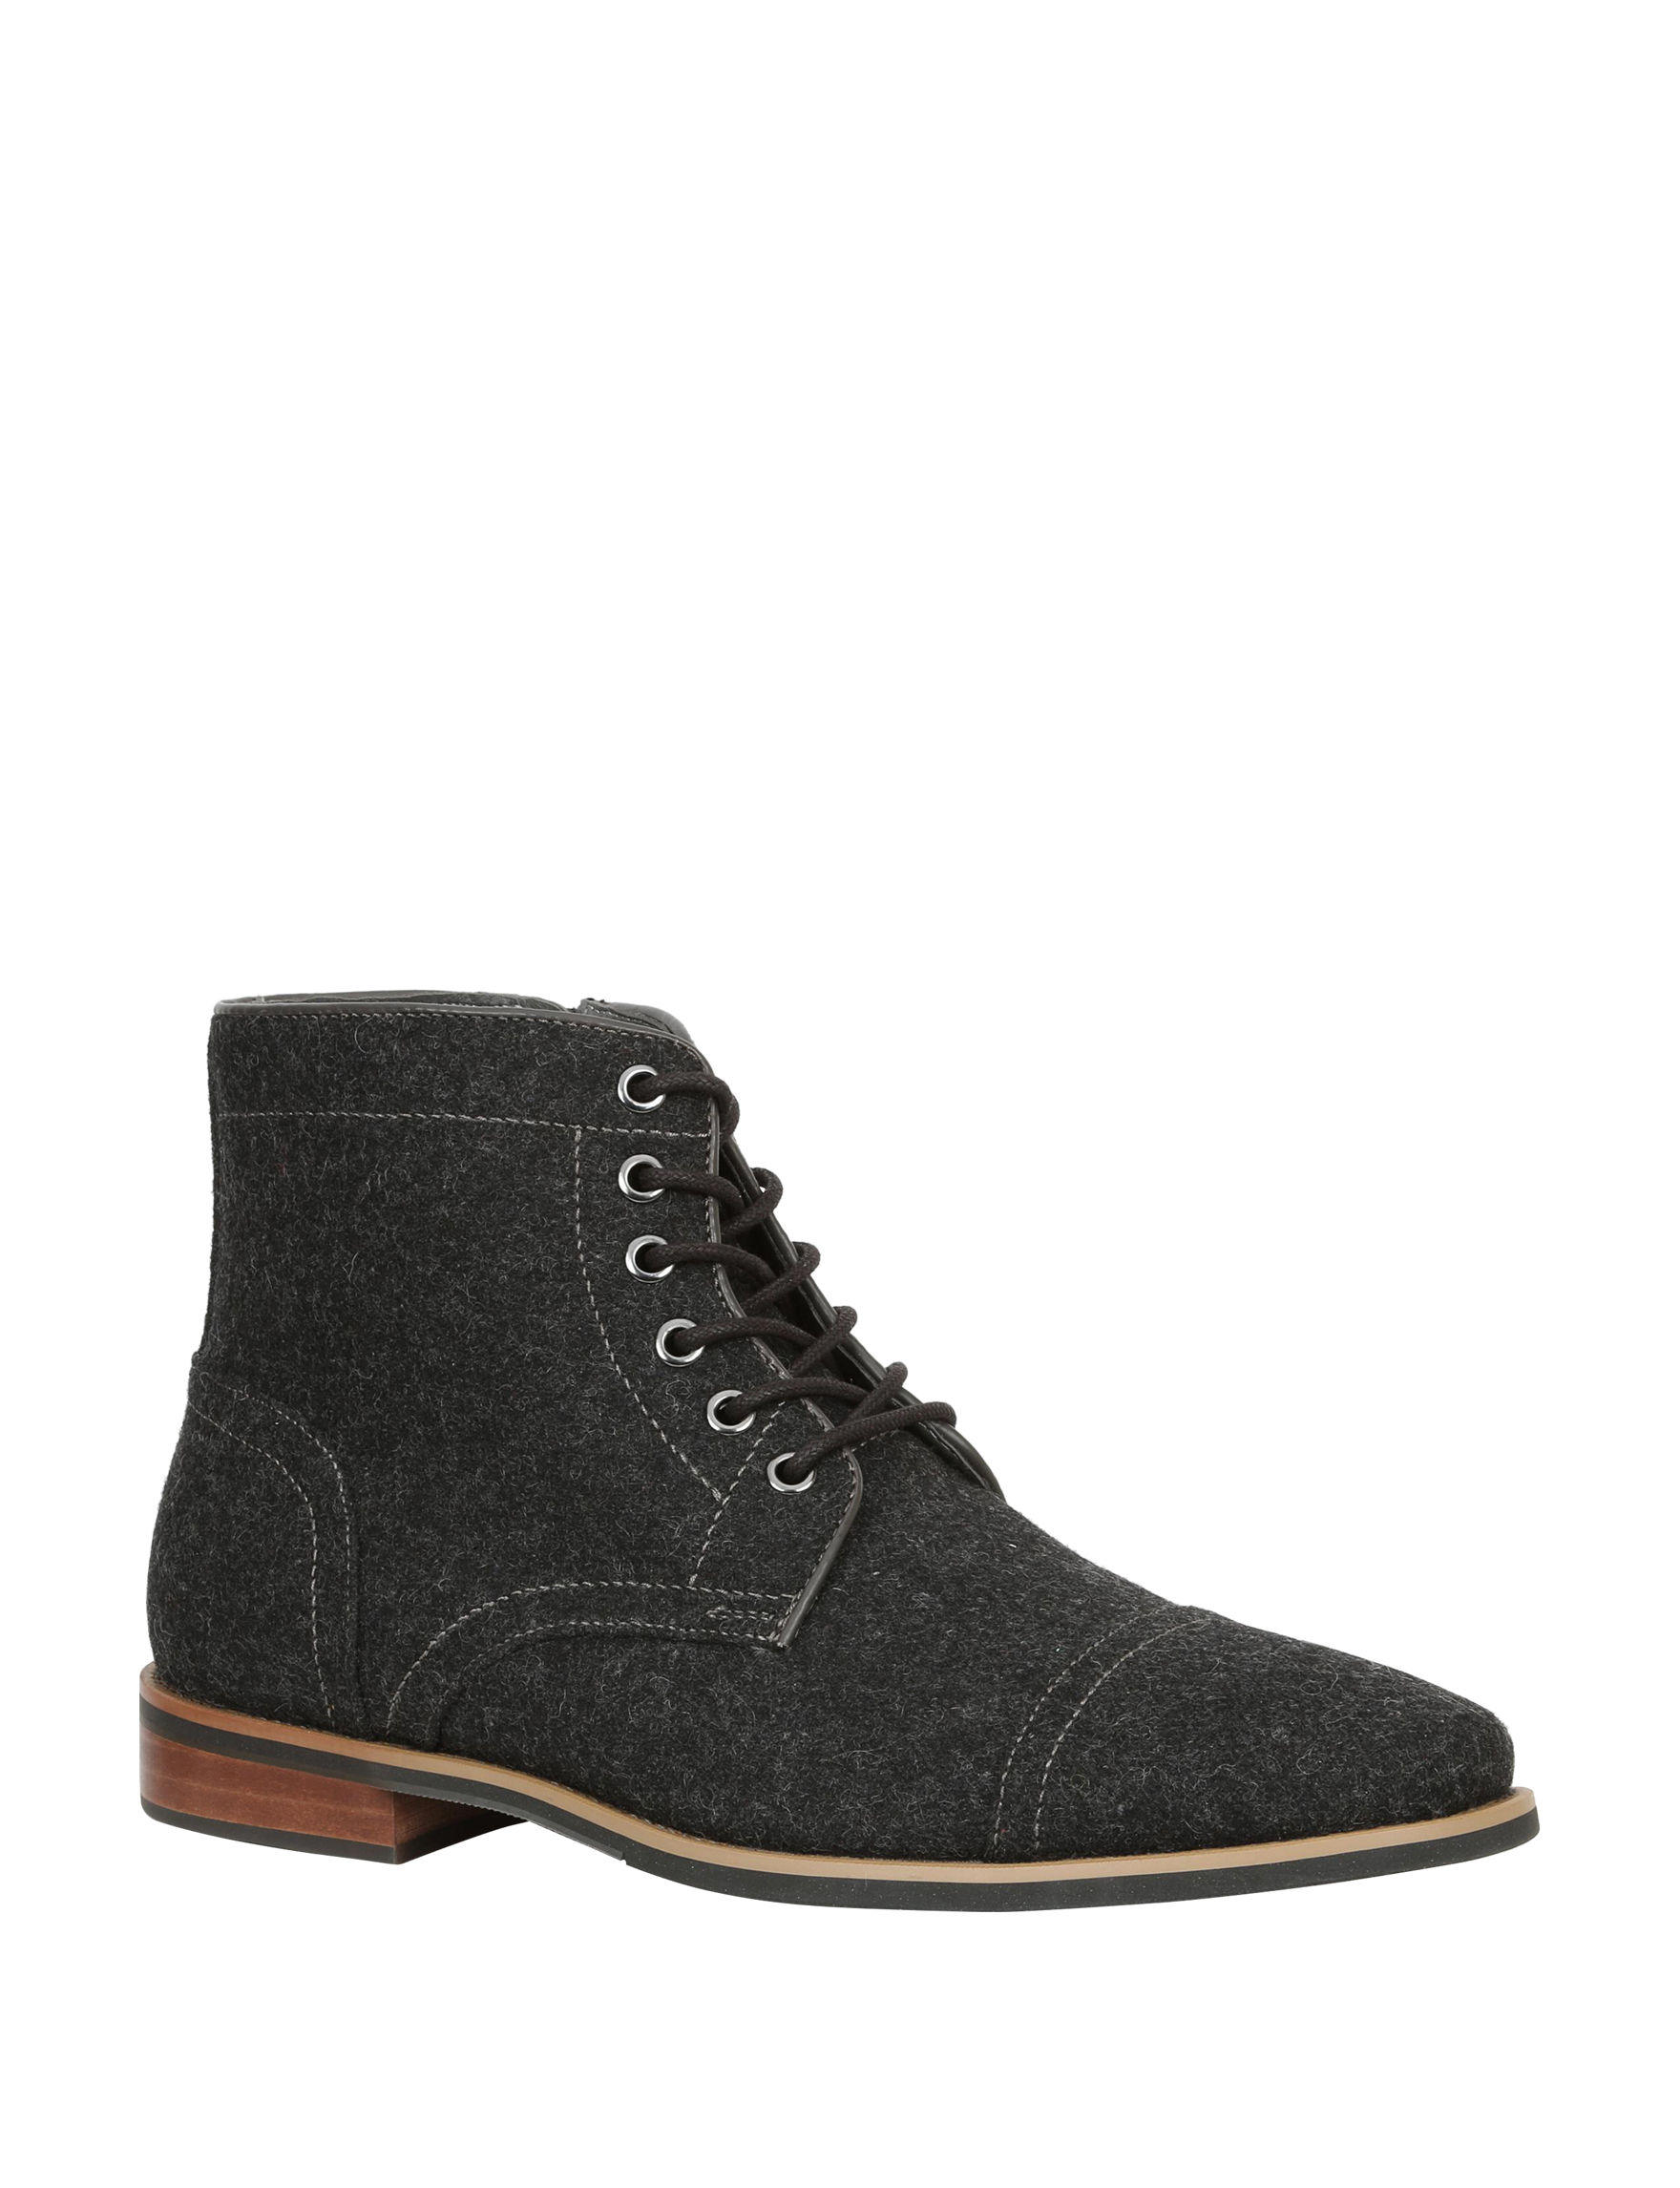 Giorgio Brutini Dark Grey Winter Boots